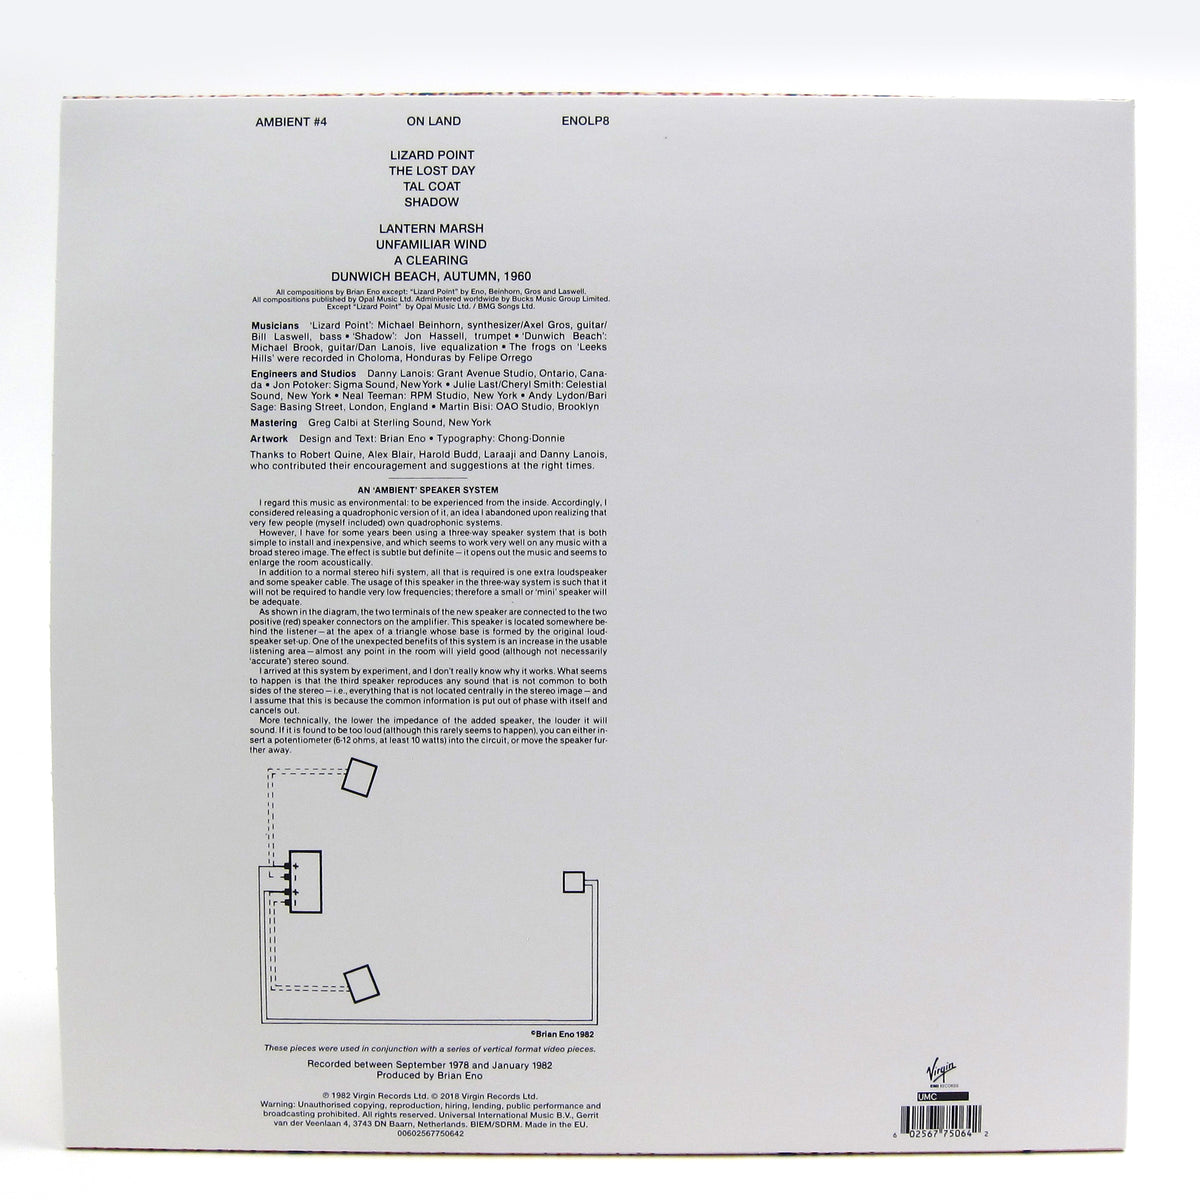 Brian Eno: Ambient 4 - On Land (180g) Vinyl LP